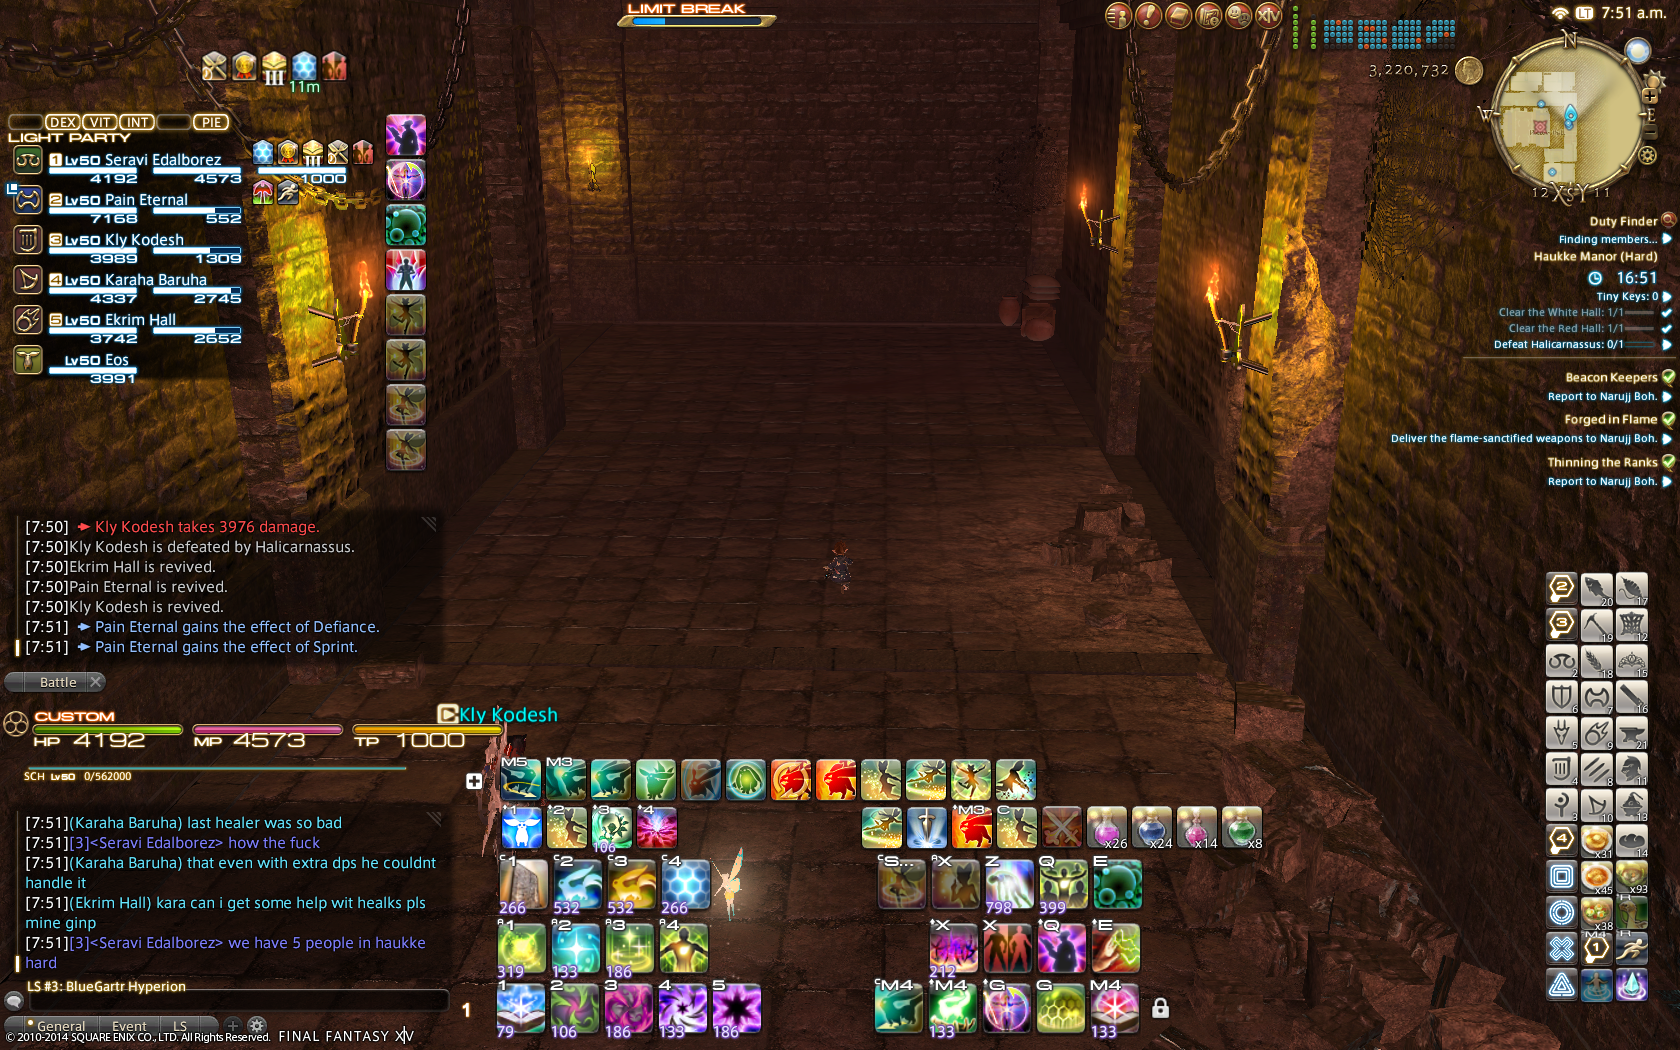 seravi edalborez ffxiv they duty that fail right unless enter away going gear chests some months raid when until anyway month feel like doesnt argument type replace still every give fucking time likely youre have which much since just been even released major something i340 hasnt this weight changes early into last tier only button then half expert thing whispering more upkeep mentioned gokulo after selene dawn roulette ever trials aetherpact ultimate coil potato count complaint random thread cant because seems make while enough hard fight where hits tank